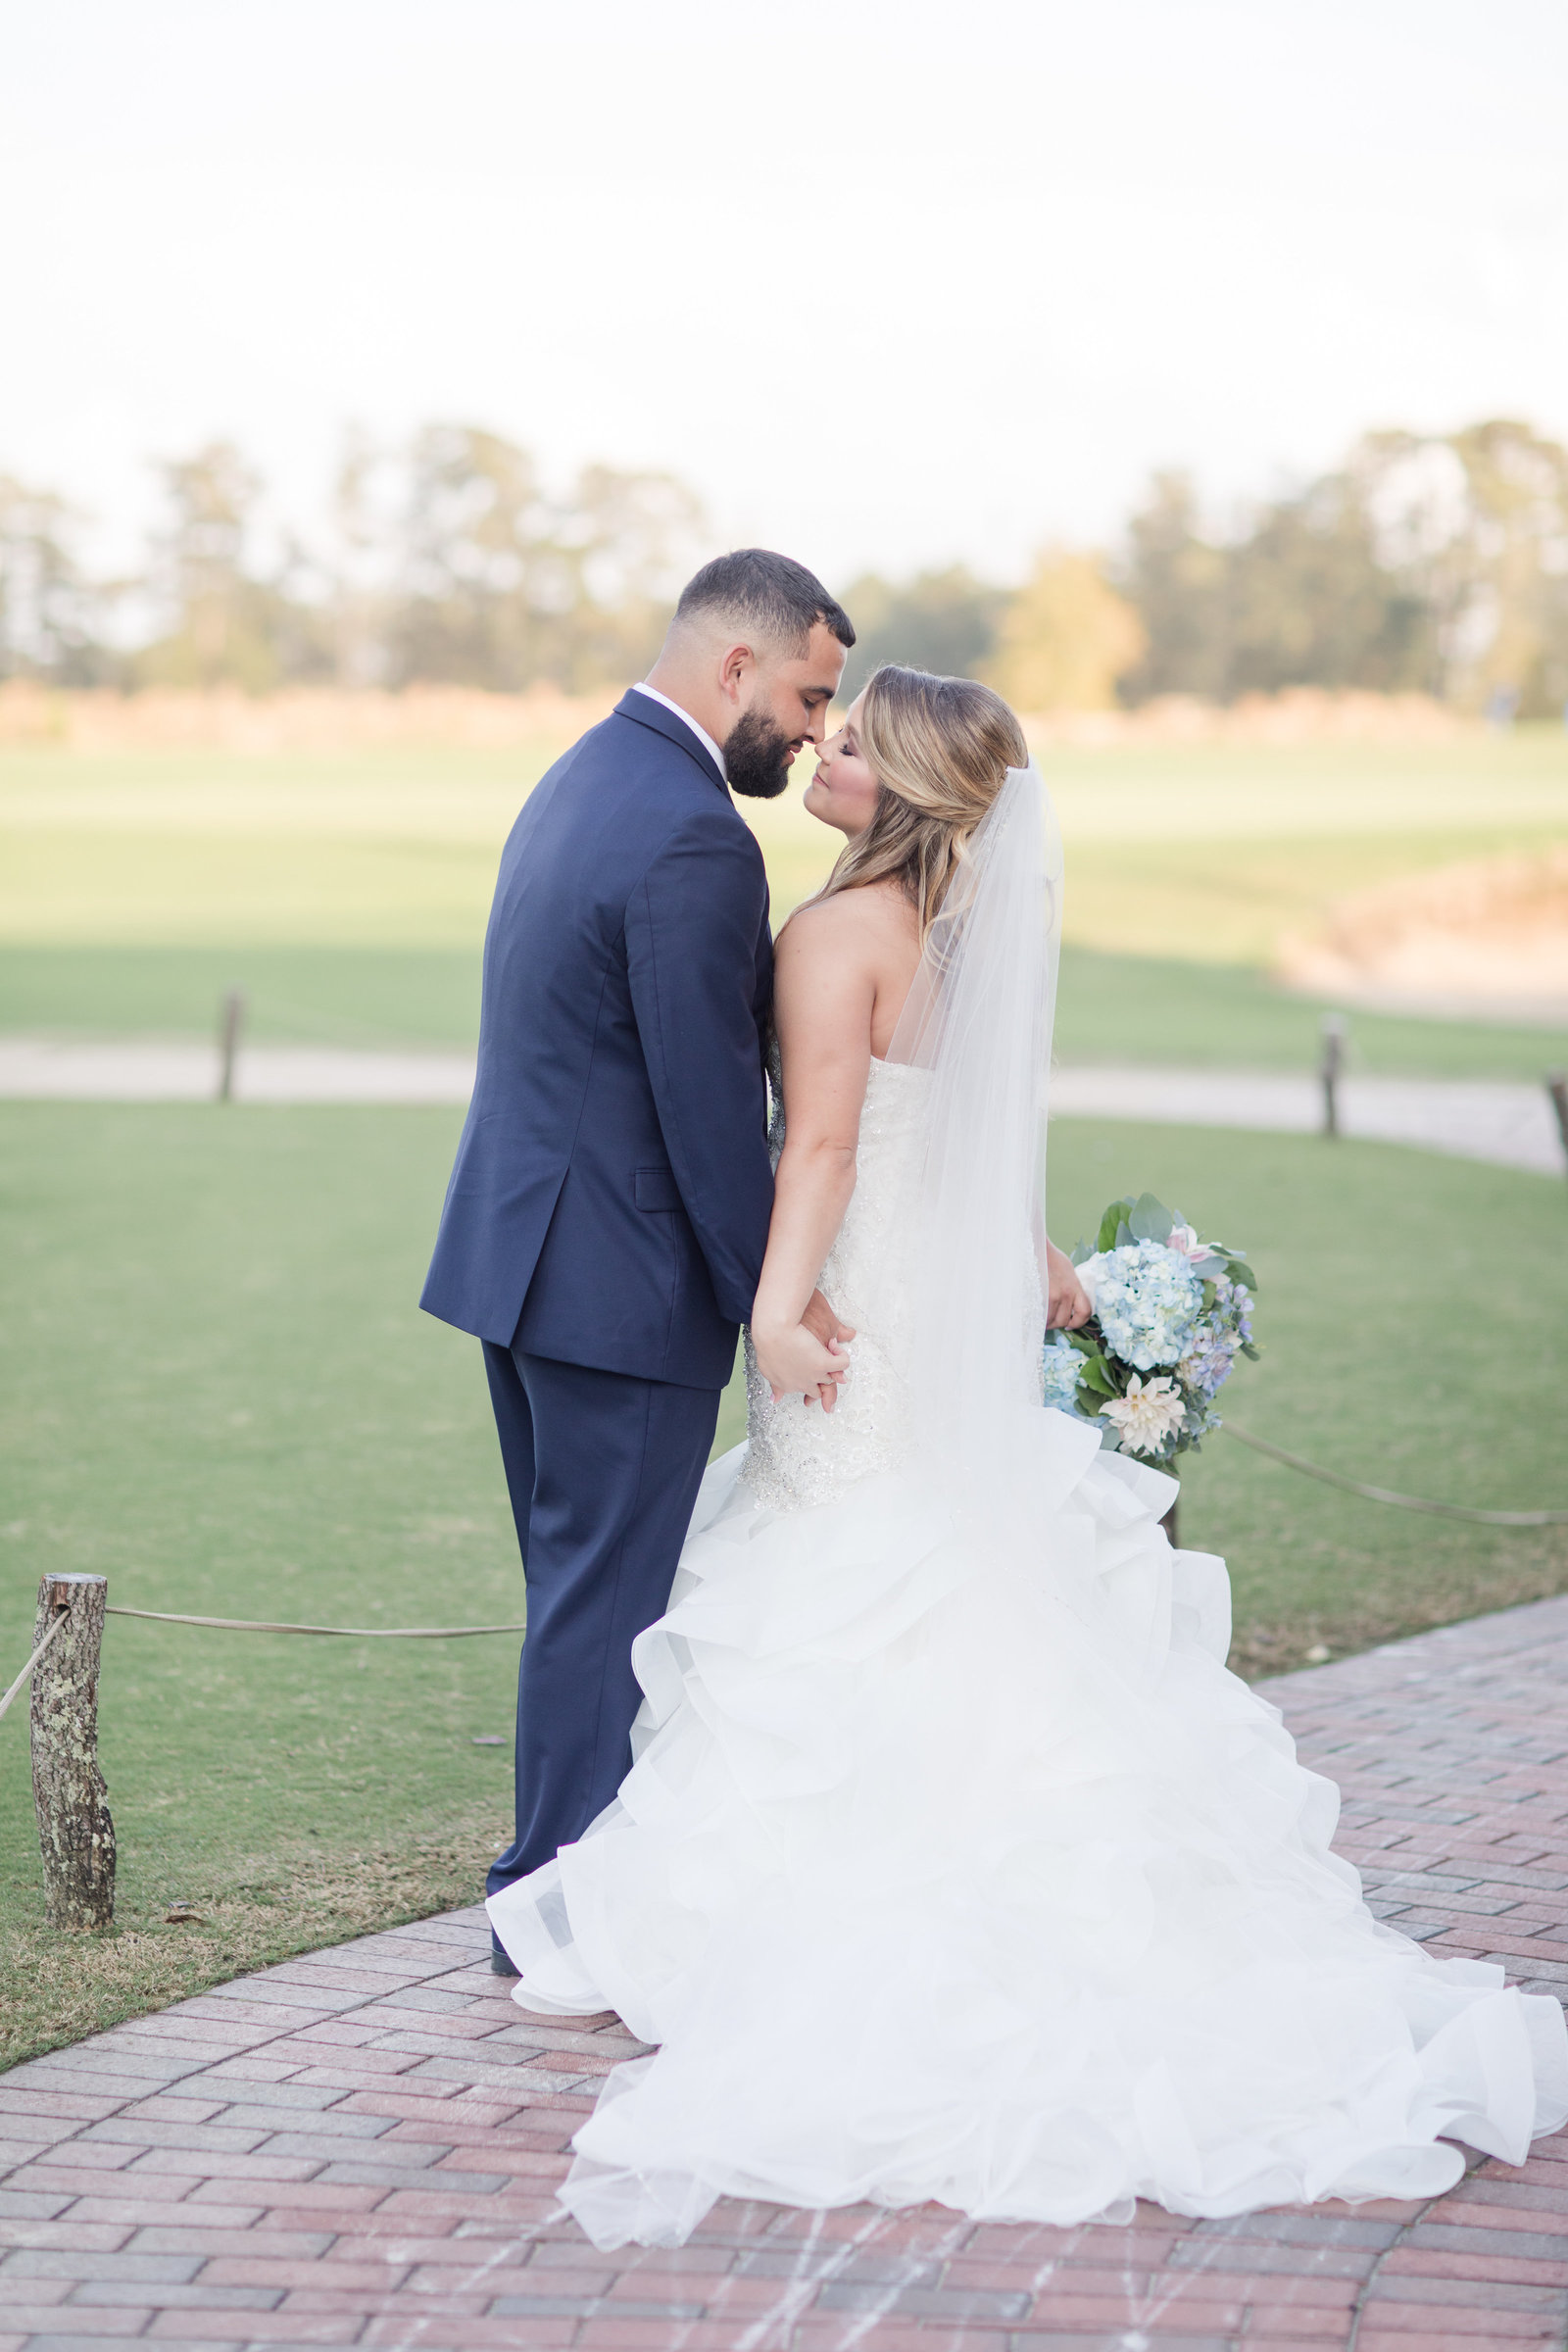 Jennifer_B_Photography-Pinehurst_Club-Pinehurst_NC-Wedding_Day-Caleb___Miranda-JB_Favs-2019-0179